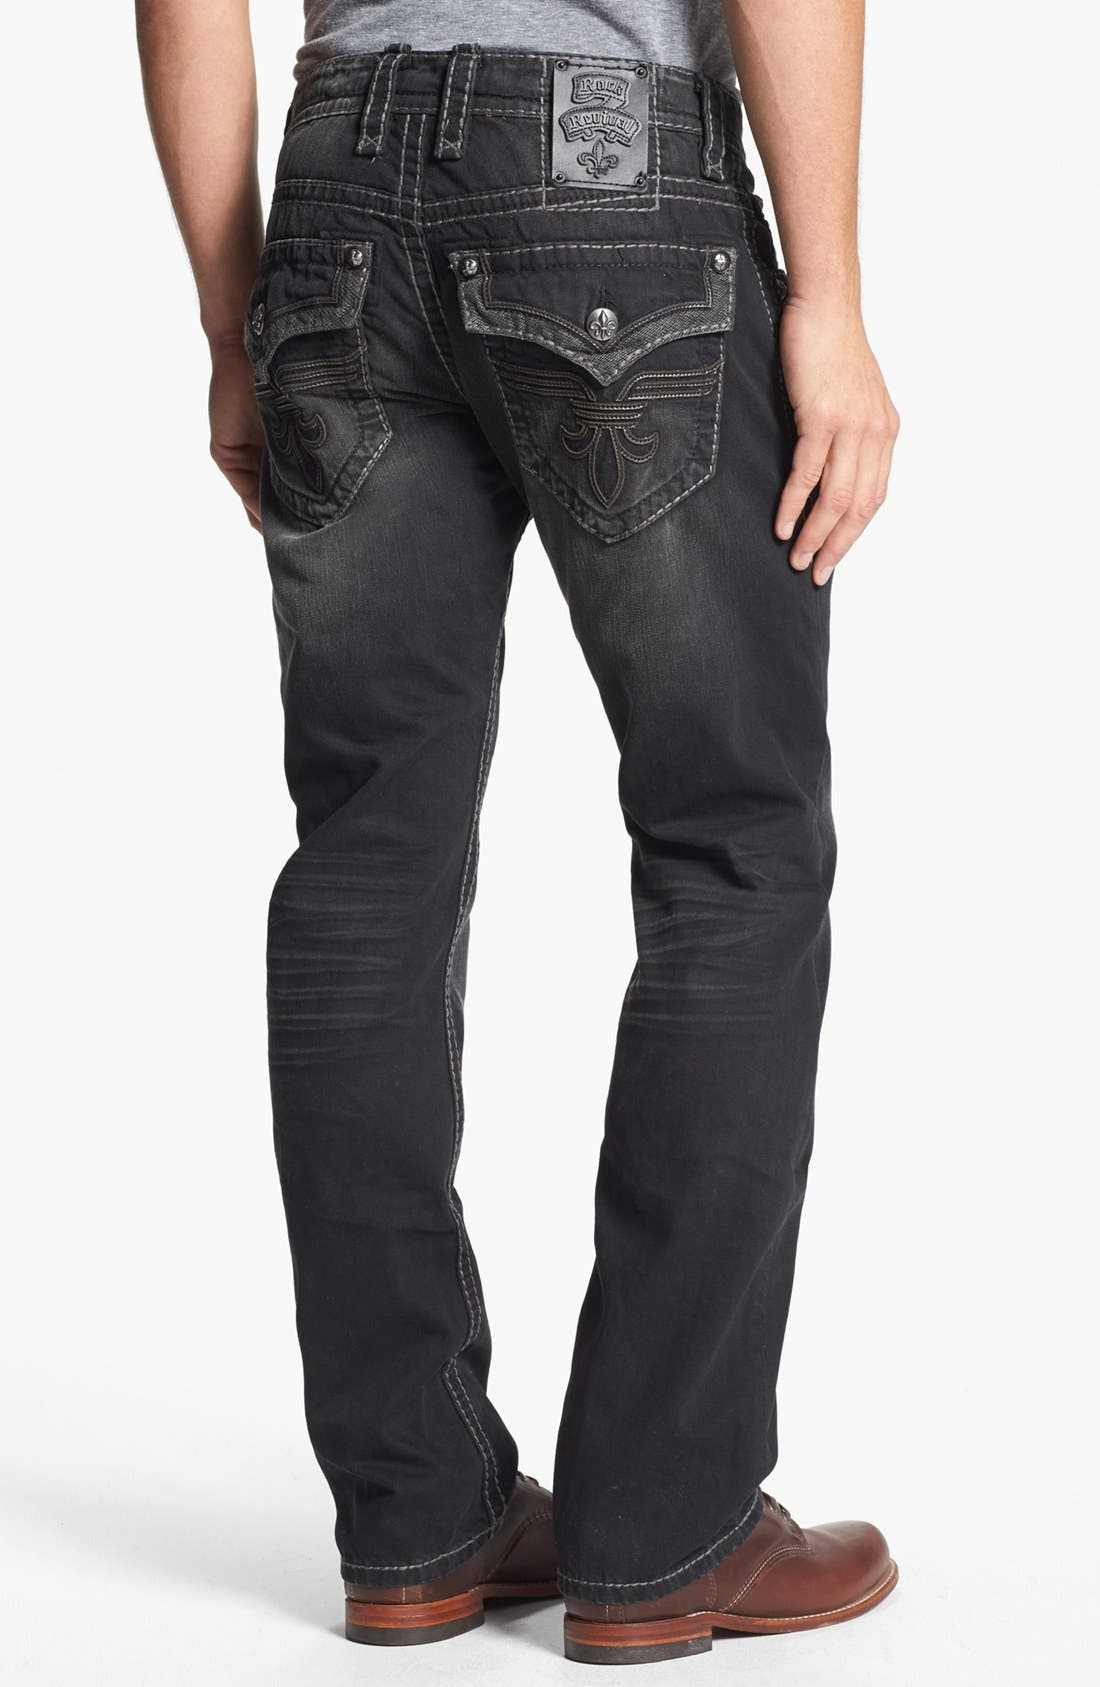 Main Image - Rock Revival 'Chopper' Straight Leg Jeans (Black)